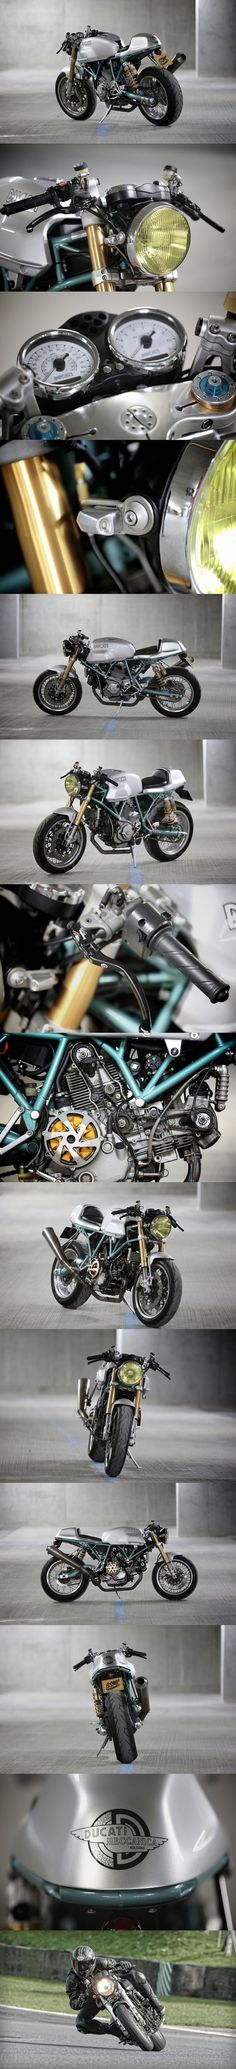 Ducati Paul Smart 1000LE Cafe Racer - by Dutch and Cafe Racer Customs